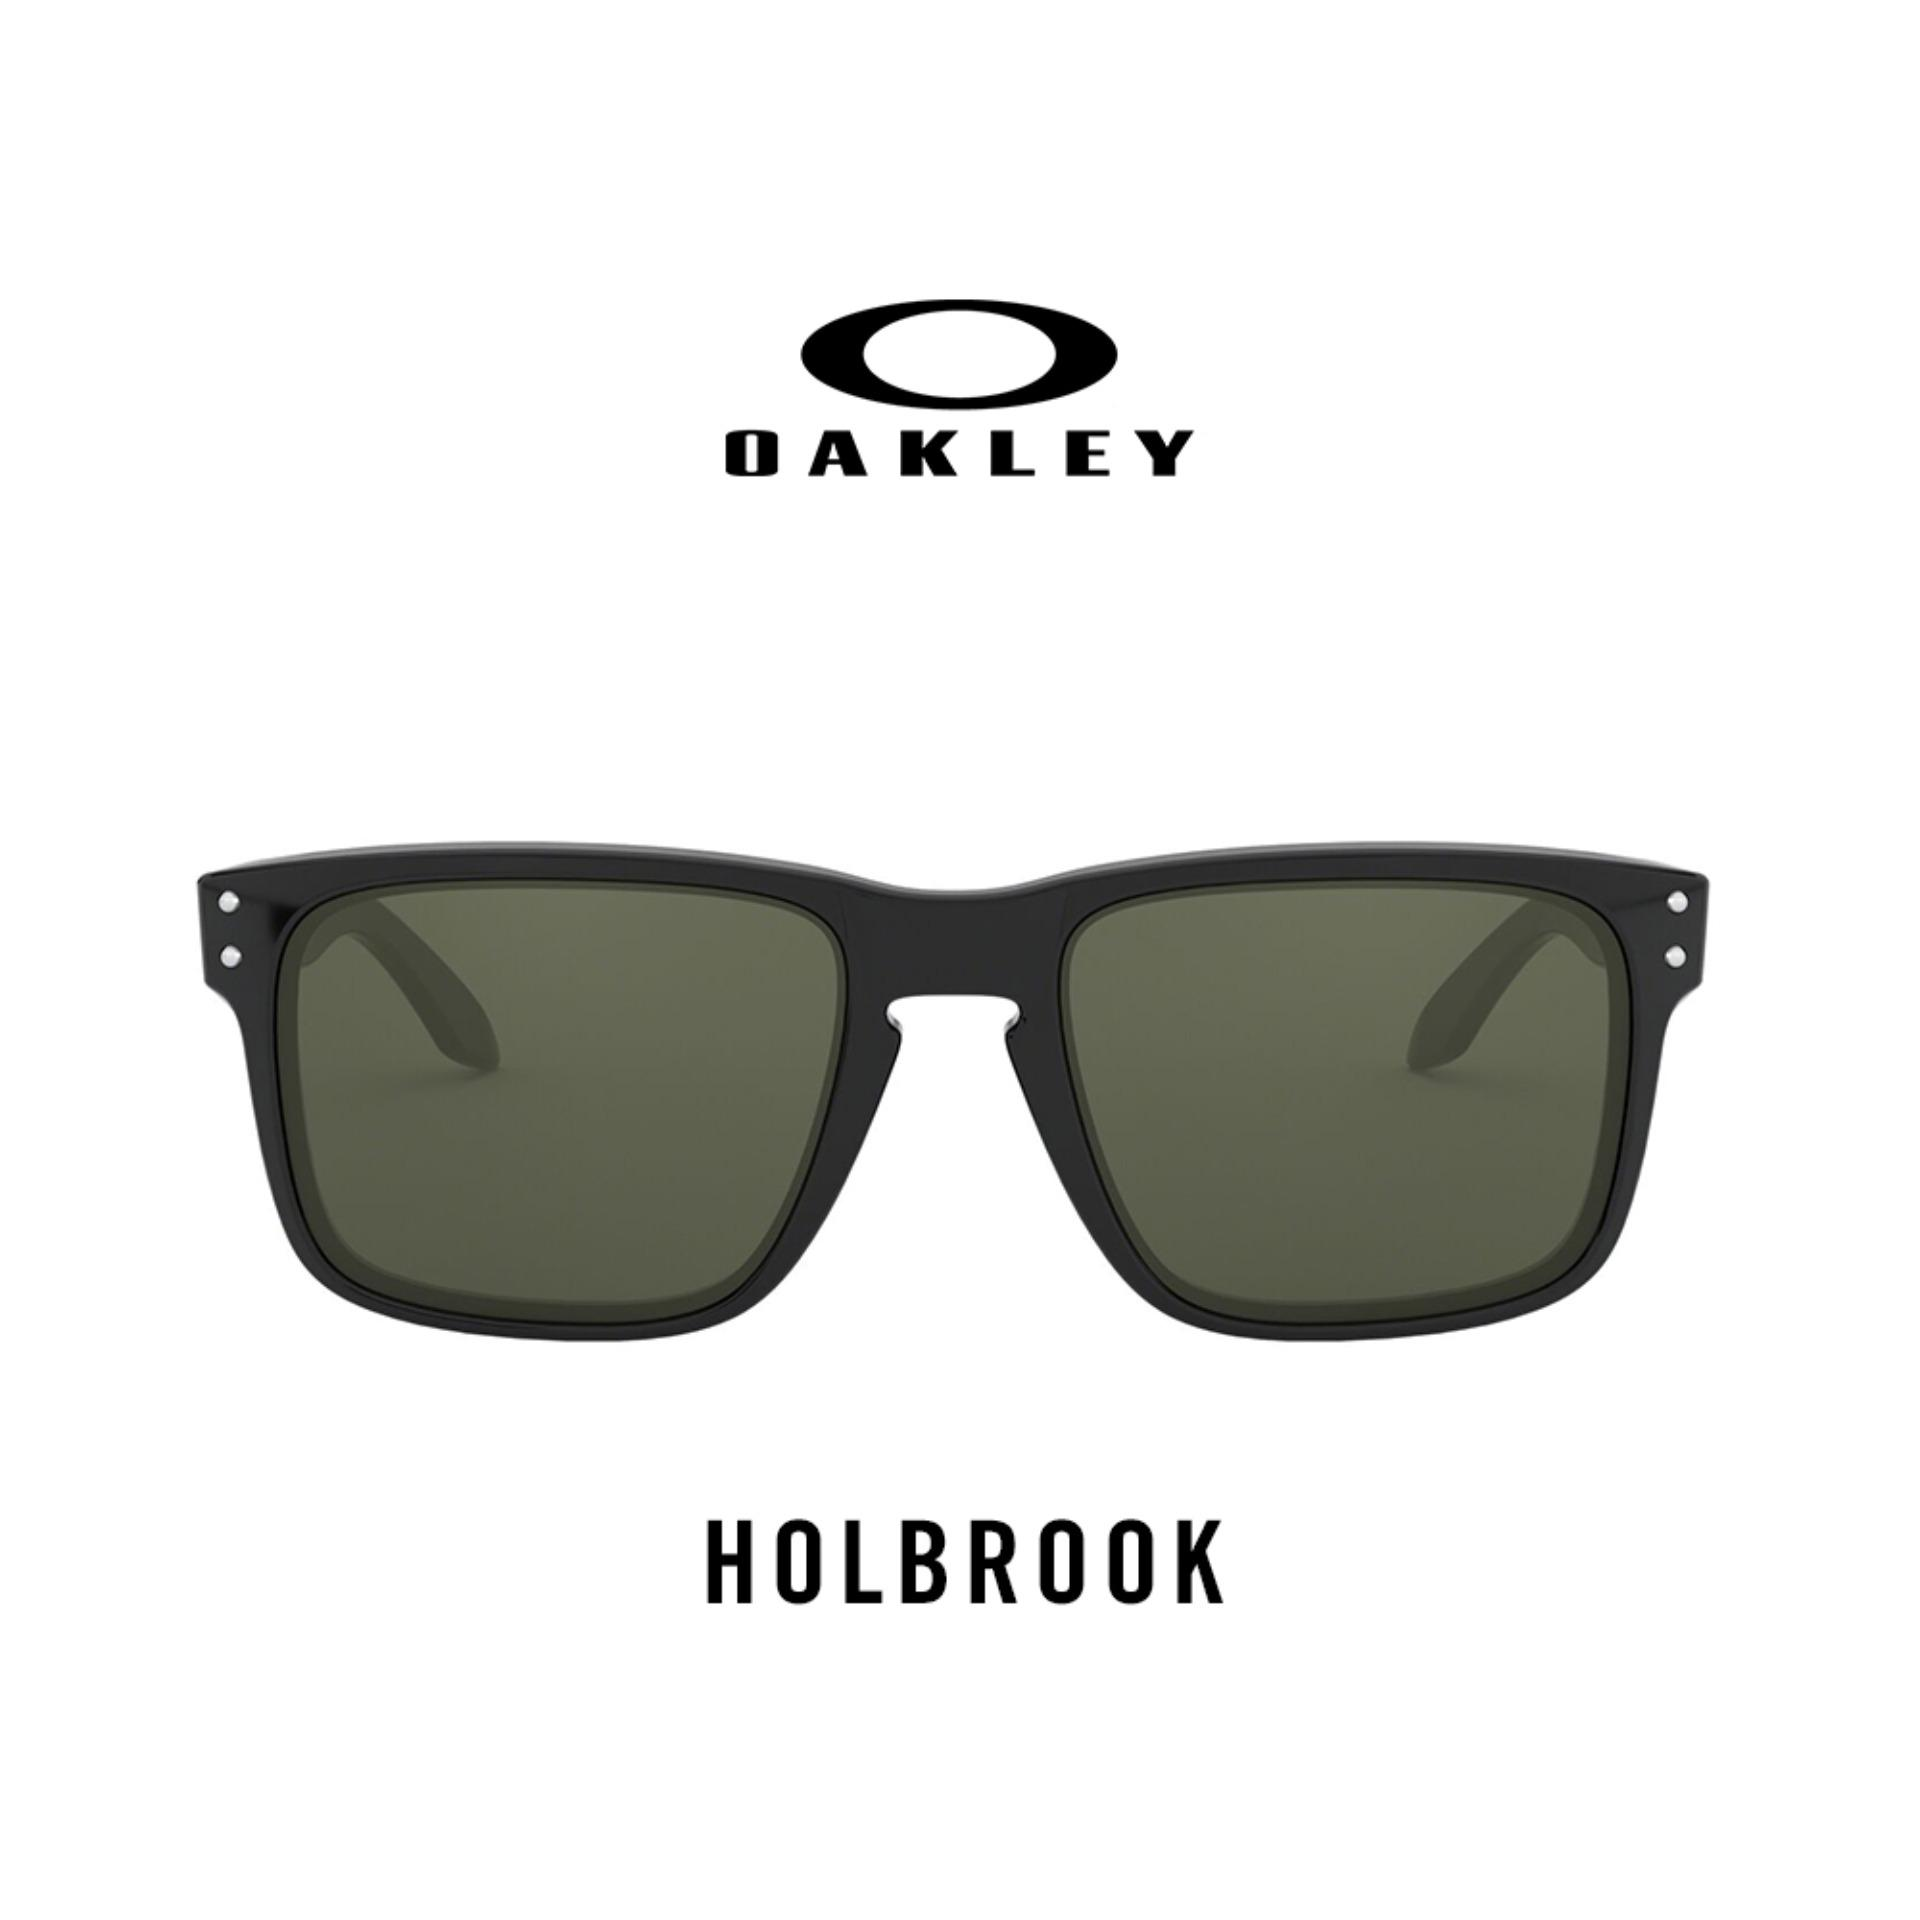 2806c9160dd2 Oakley Philippines: Oakley price list - Oakley Shades & Sunglasses ...